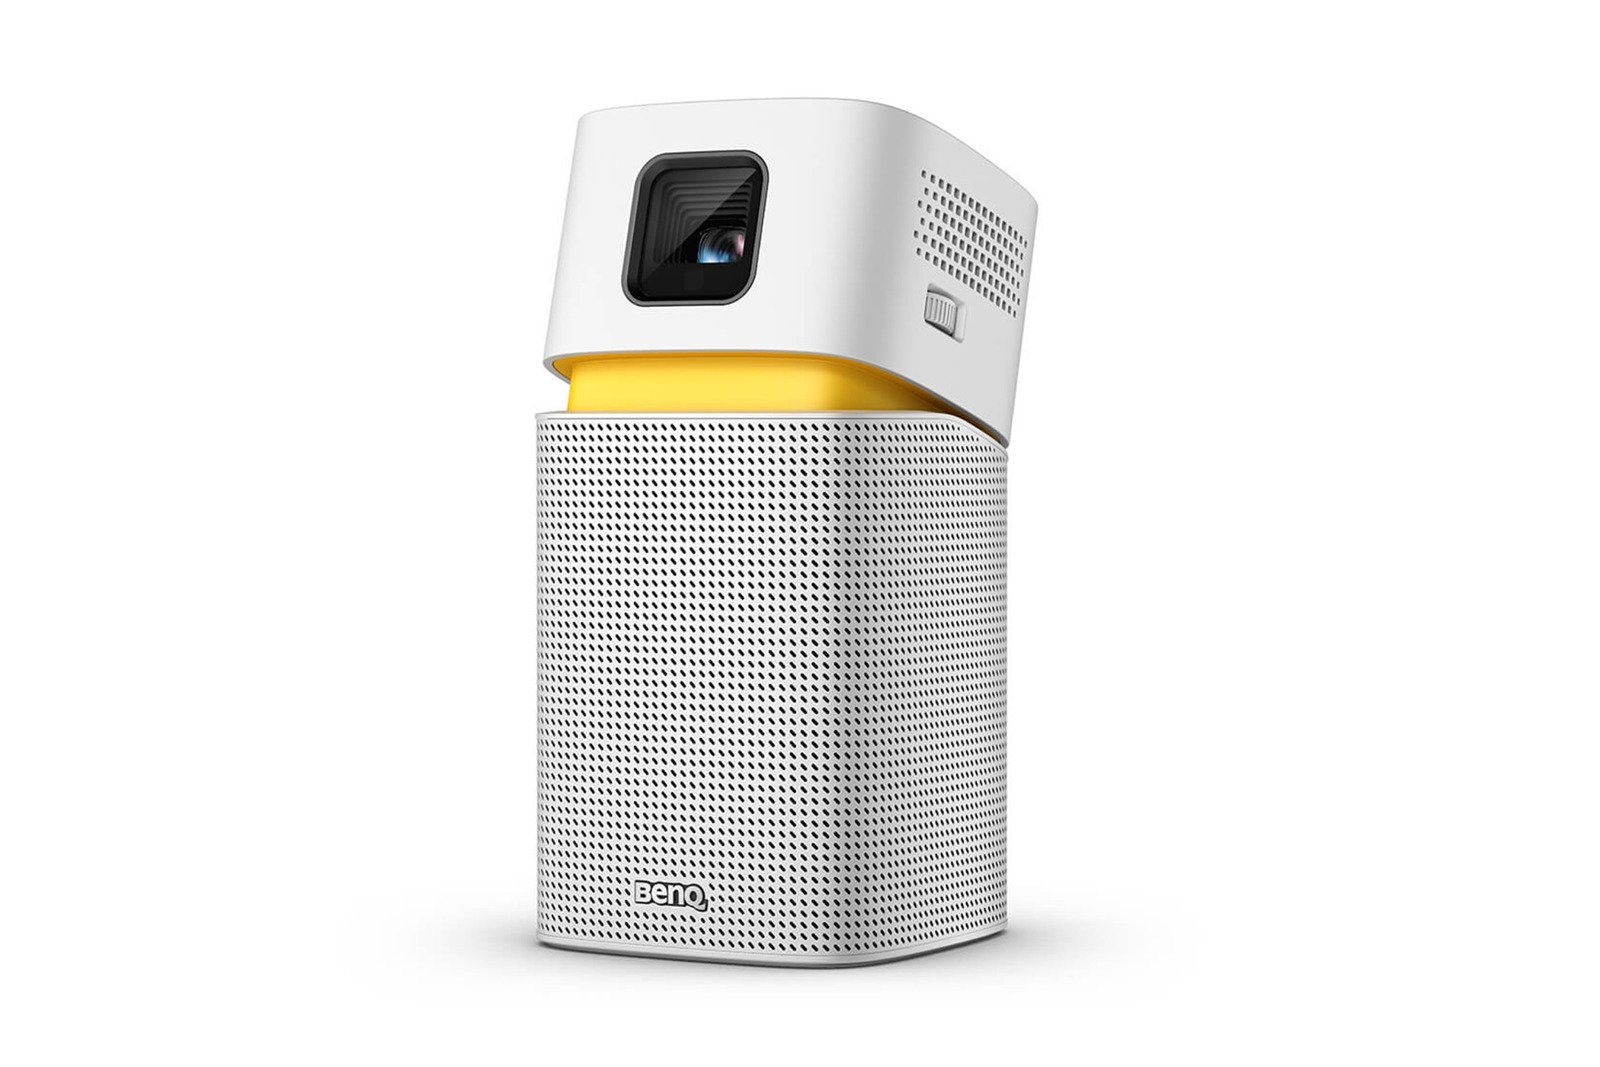 New BenQ GV1 Portable Projector with Wi-Fi and Bluetooth Speaker